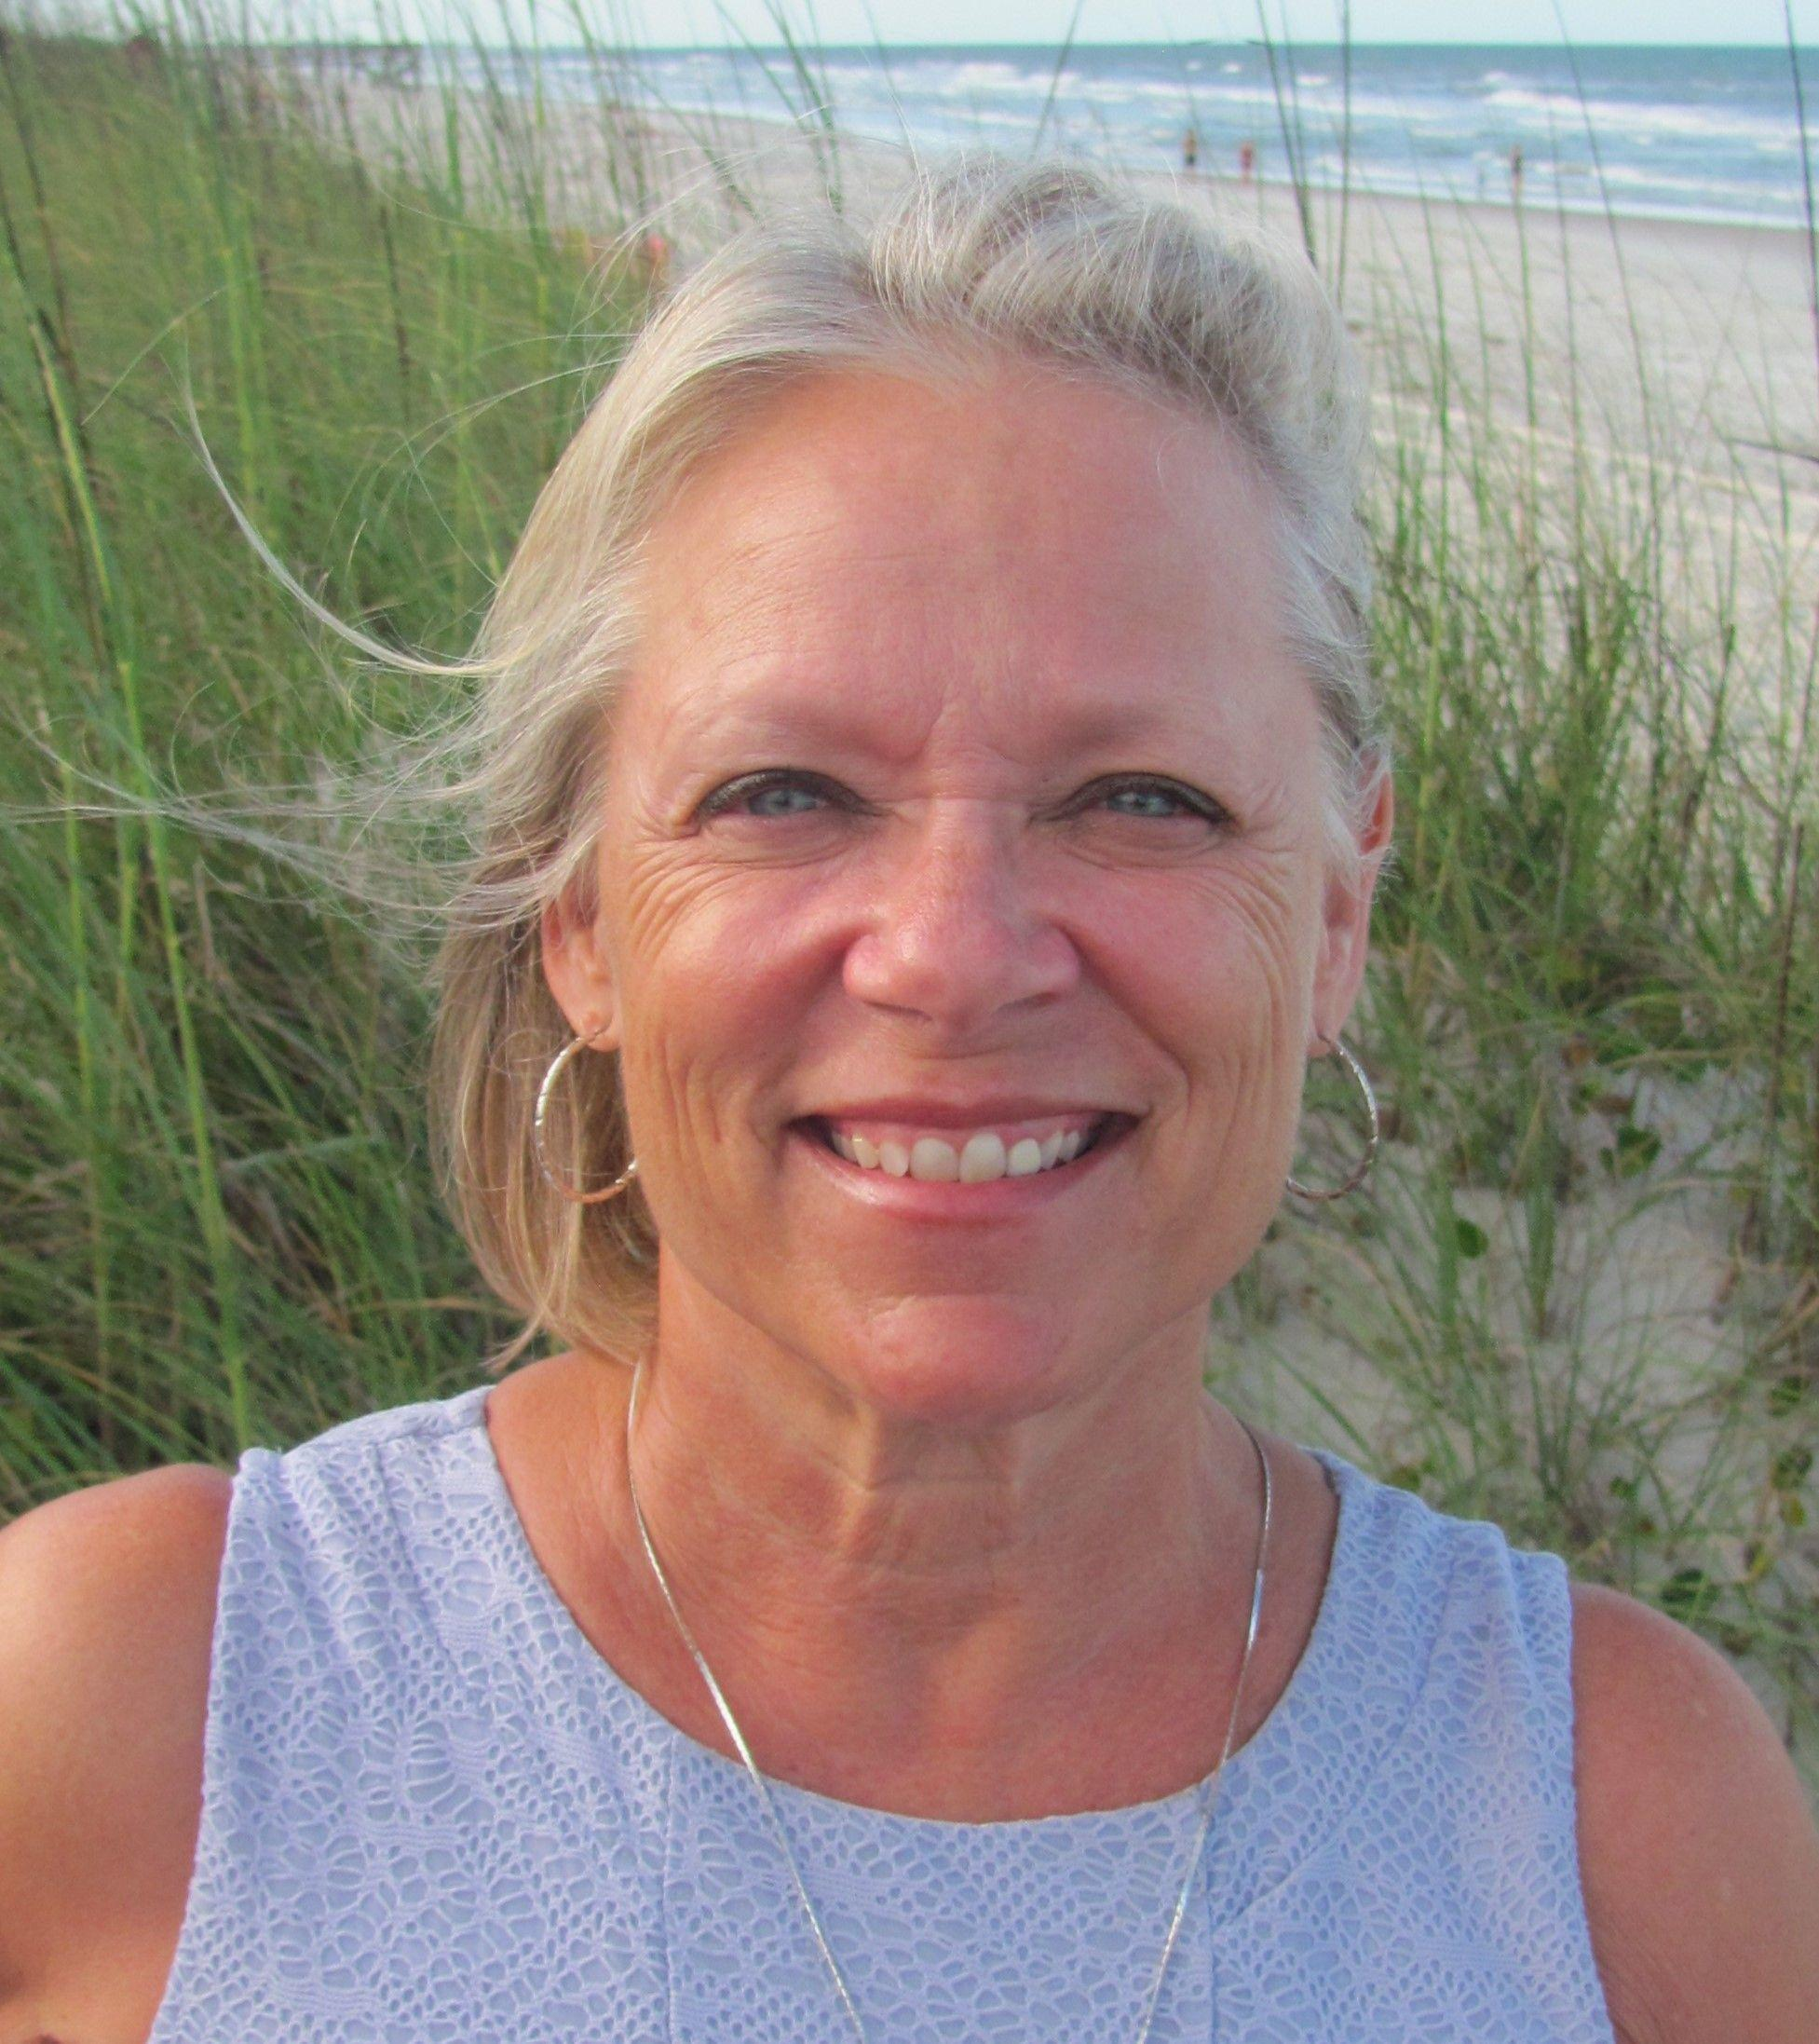 neptune beach divorced singles Singles cruises: read 1915 singles cruise reviews find great deals, tips and tricks on cruise critic to help plan your cruise.